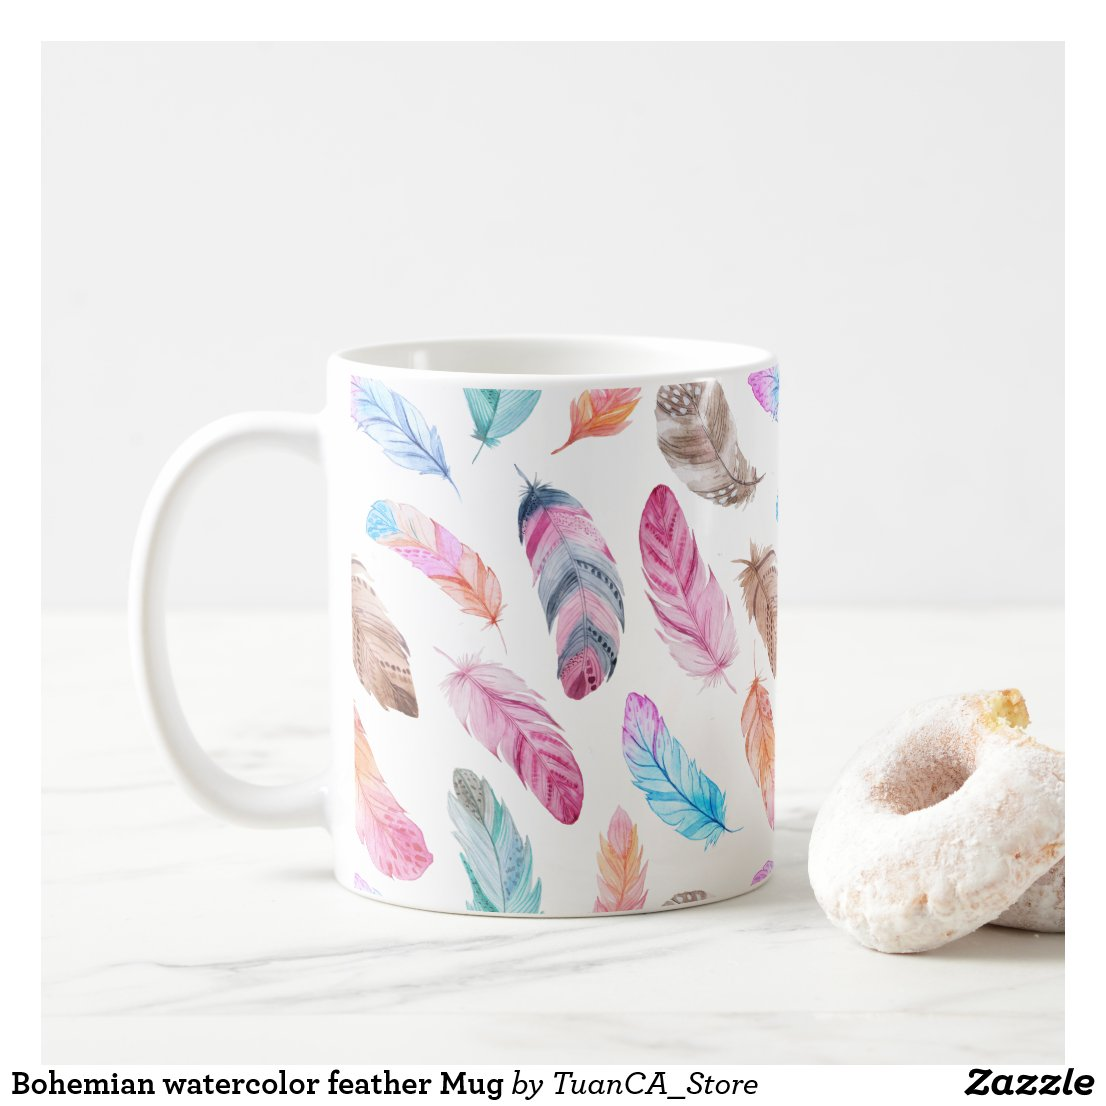 Bohemian watercolor feather Mug